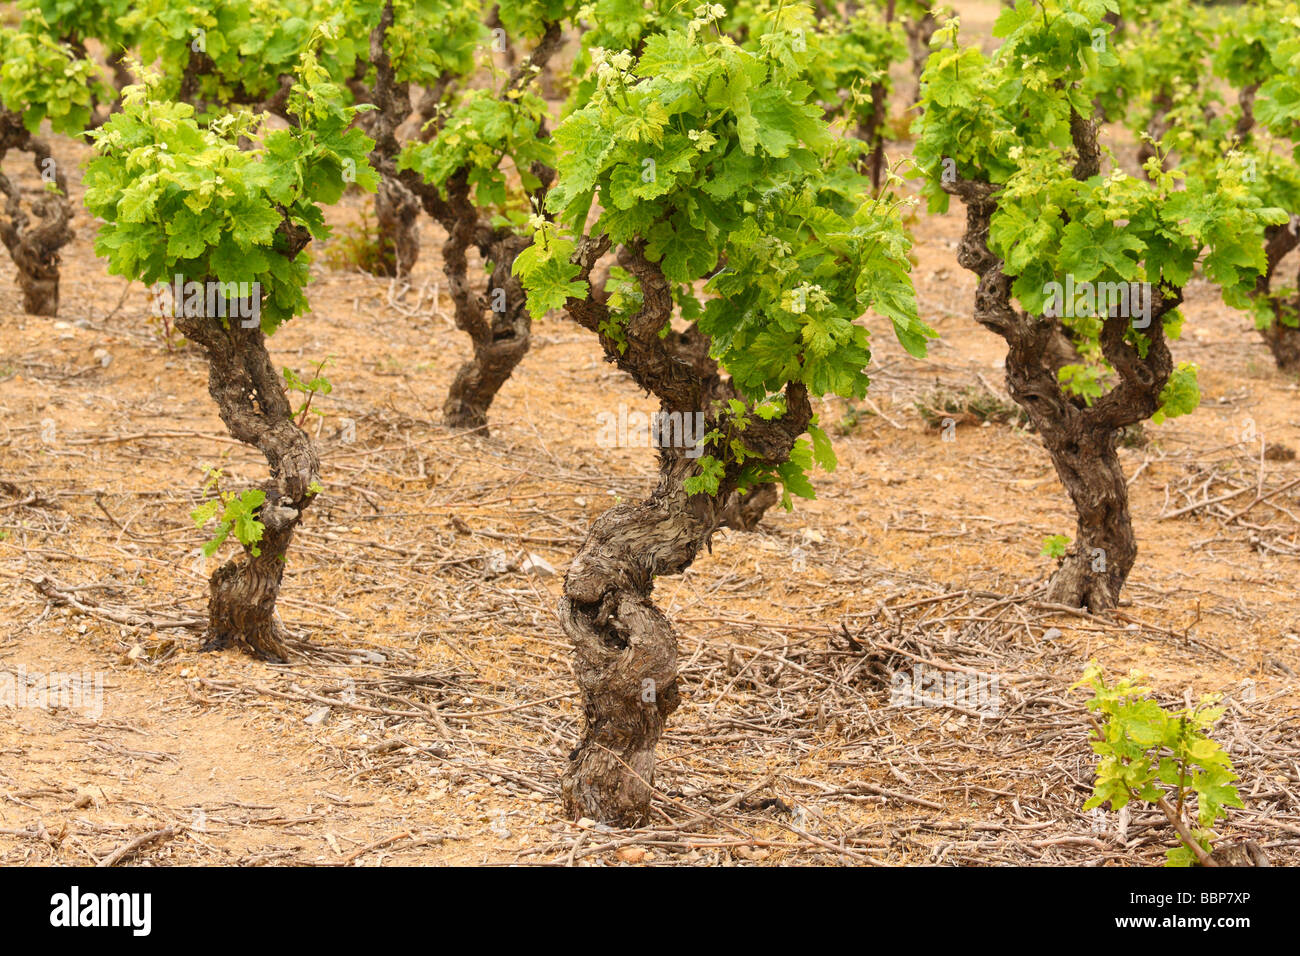 Old gnarled vine grape with young green spring leaves Minervois Languedoc-Rousillon France Vitis vinifera grape Stock Photo